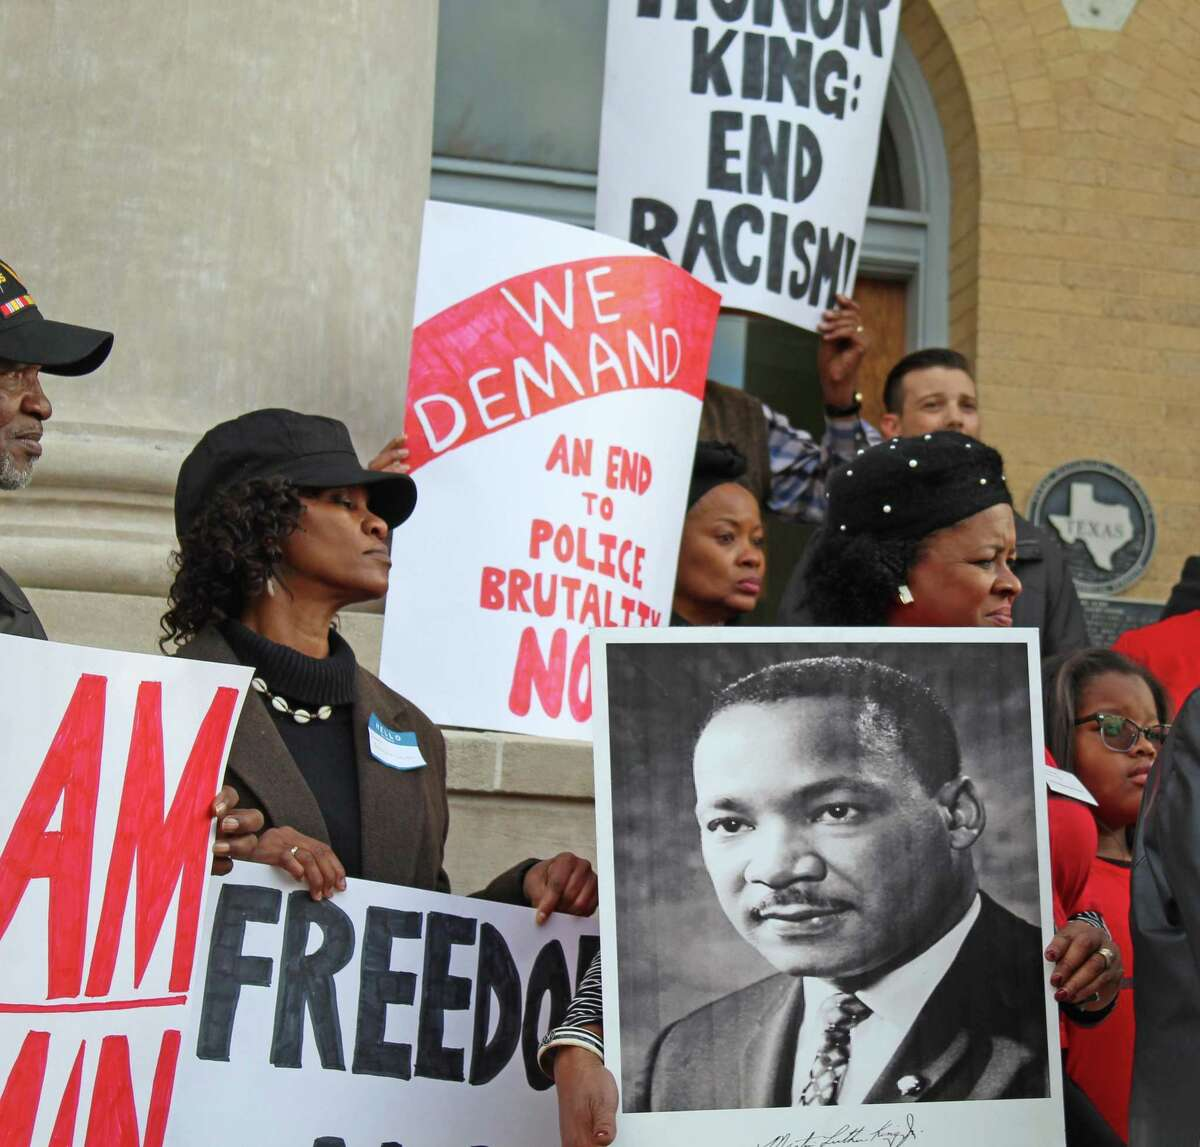 A group of protesters rallied outside the Fort Bend County Courthouse on Martin Luther King, Jr. Day against plans to re-locate the remains of 95 convict prisoners found at a historic grave site in Sugar Land.